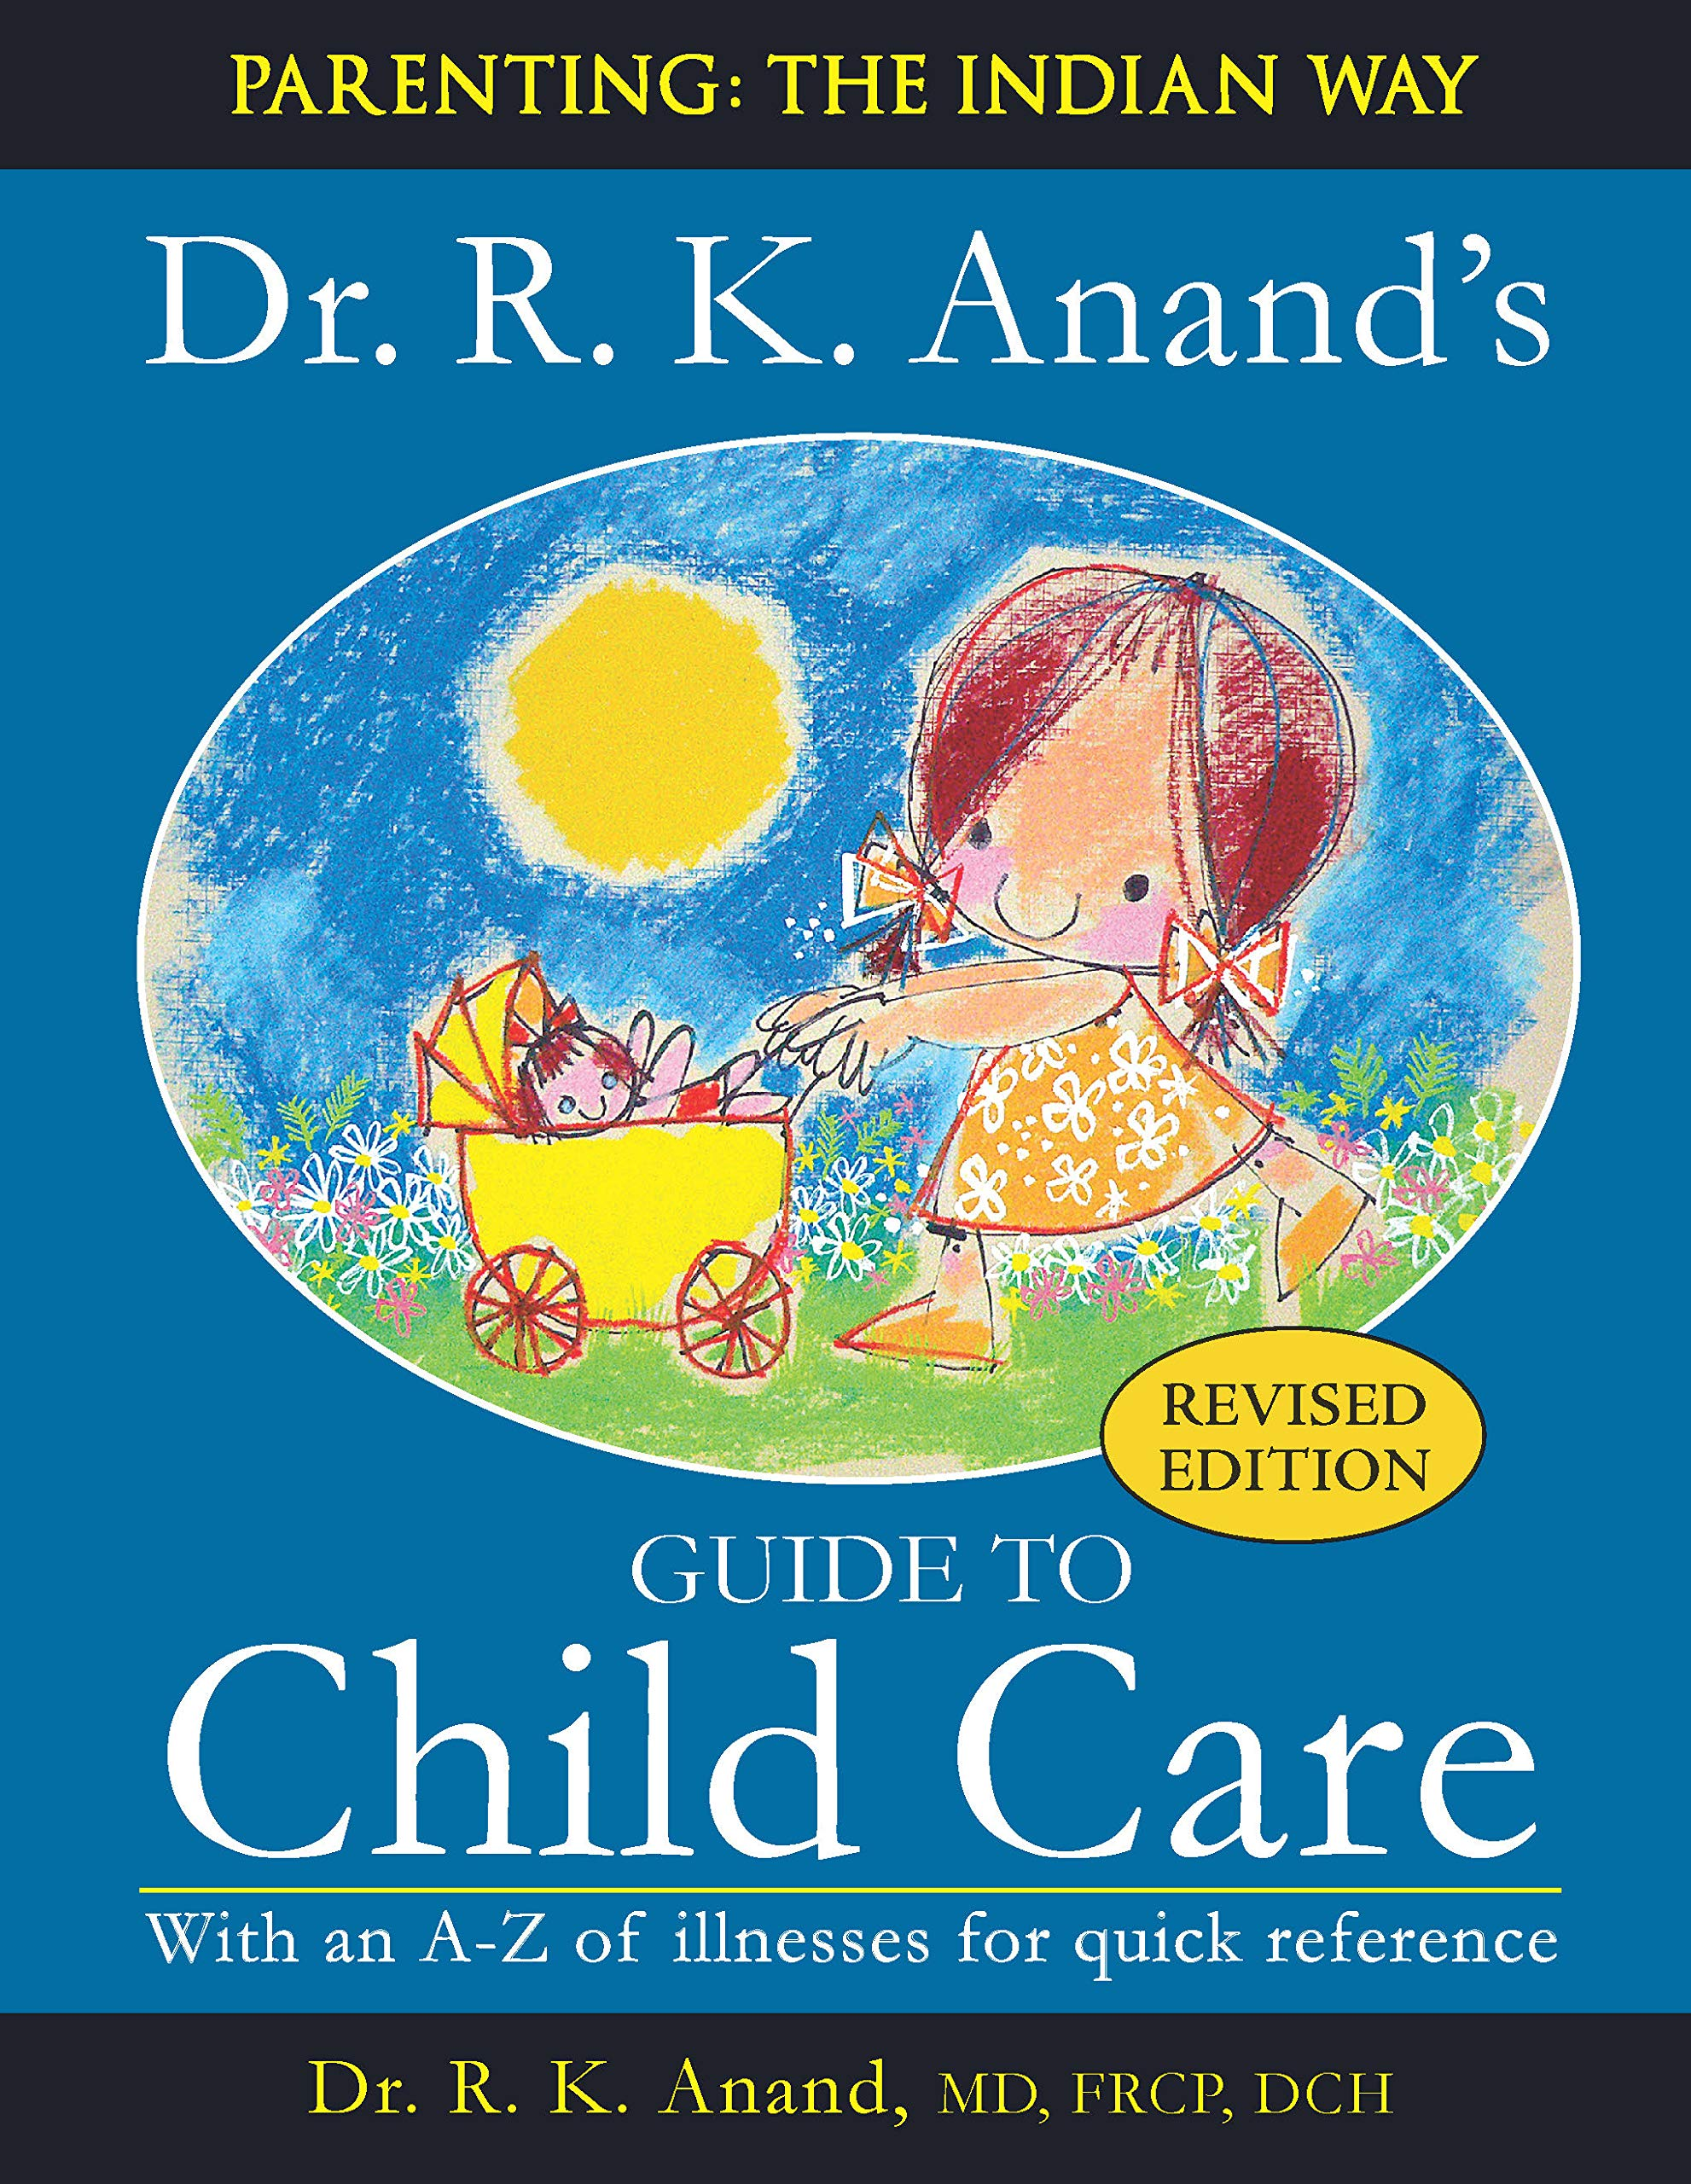 Amazon.in: Buy Guide To Child Care [paperback] Dr. R. K. Anand [Jan ...